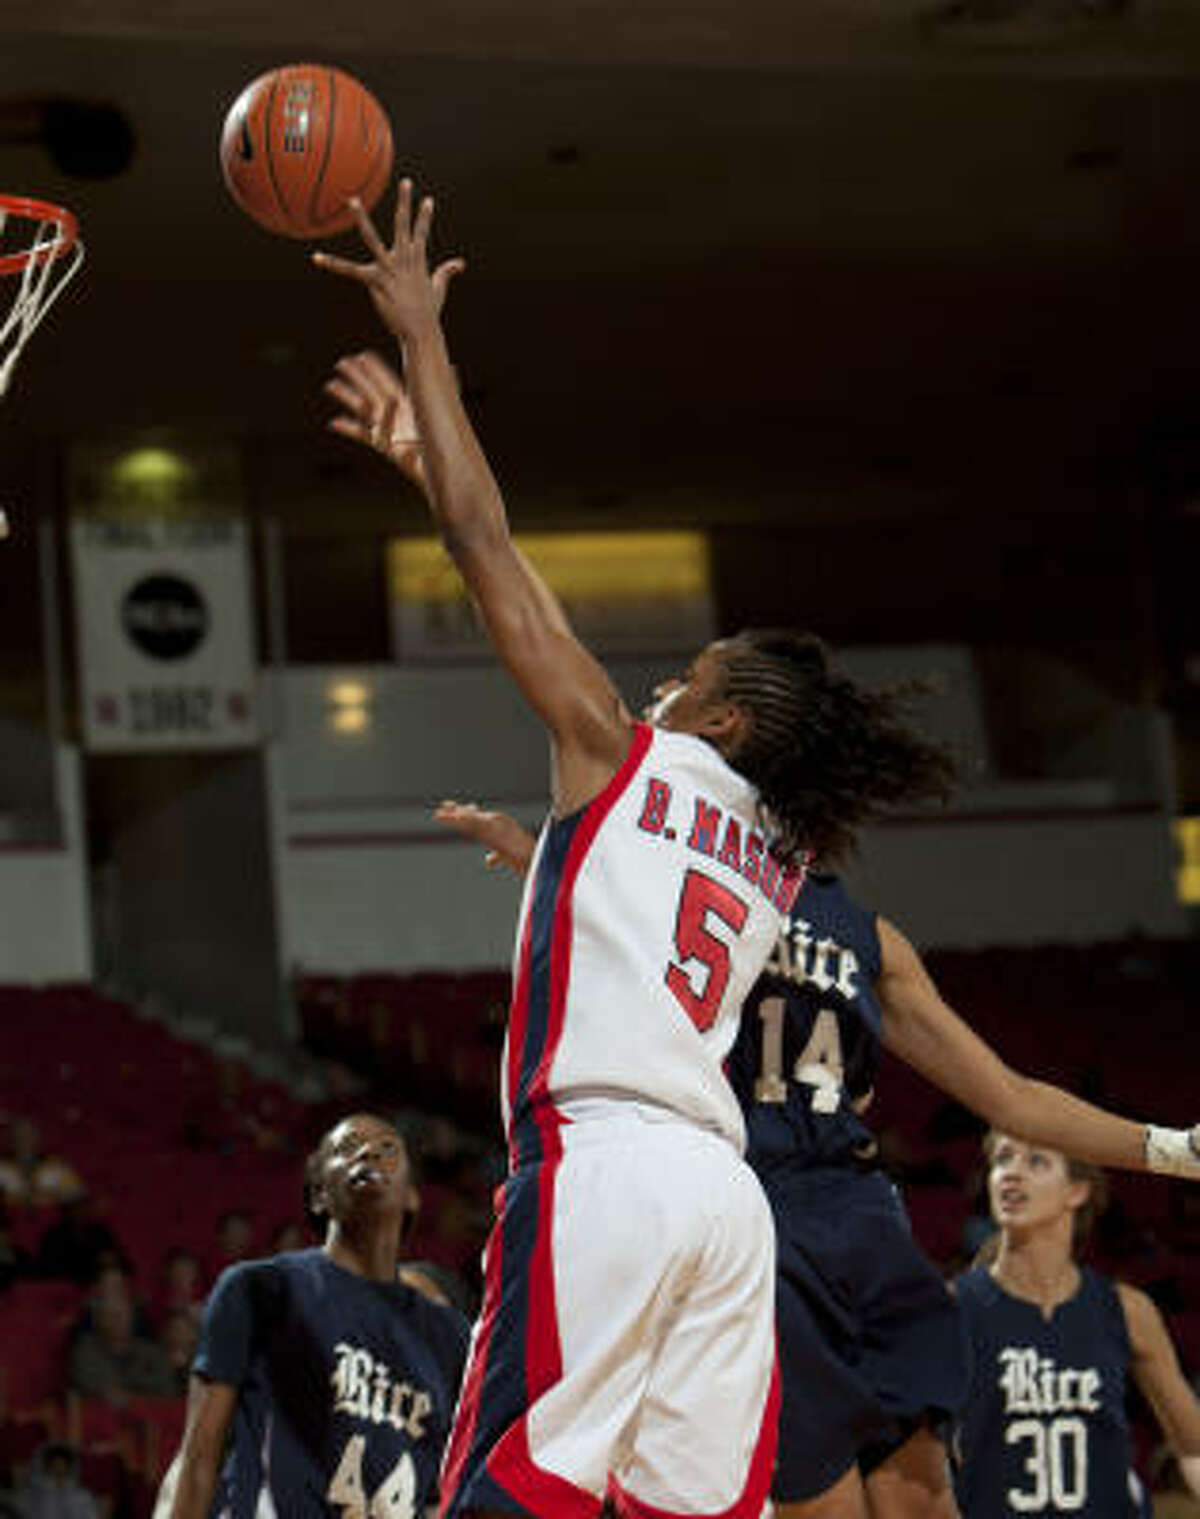 UH's Brittany Mason (5) drives to the basket over Rice's Brianna Hypolite (14) during the second half.